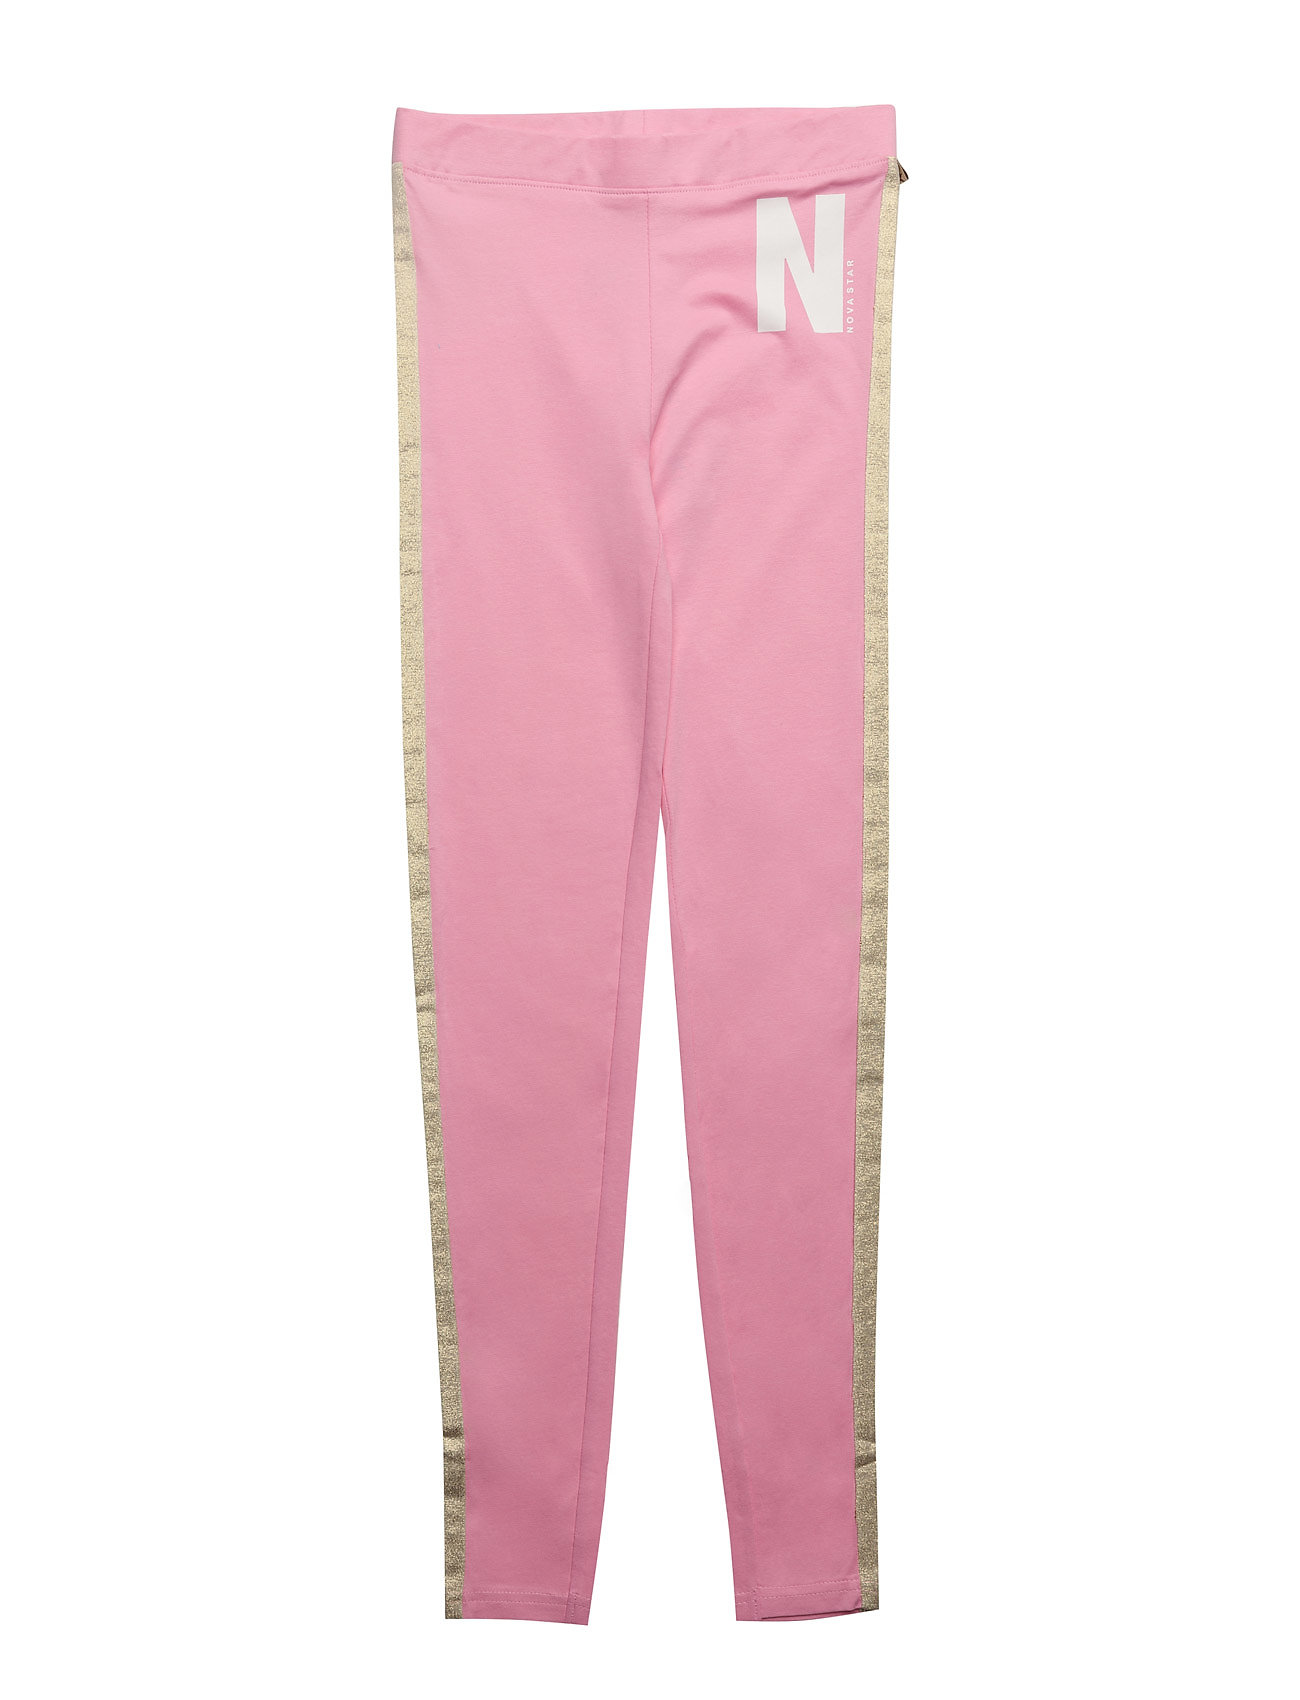 Leggings Pink/Gold thumbnail